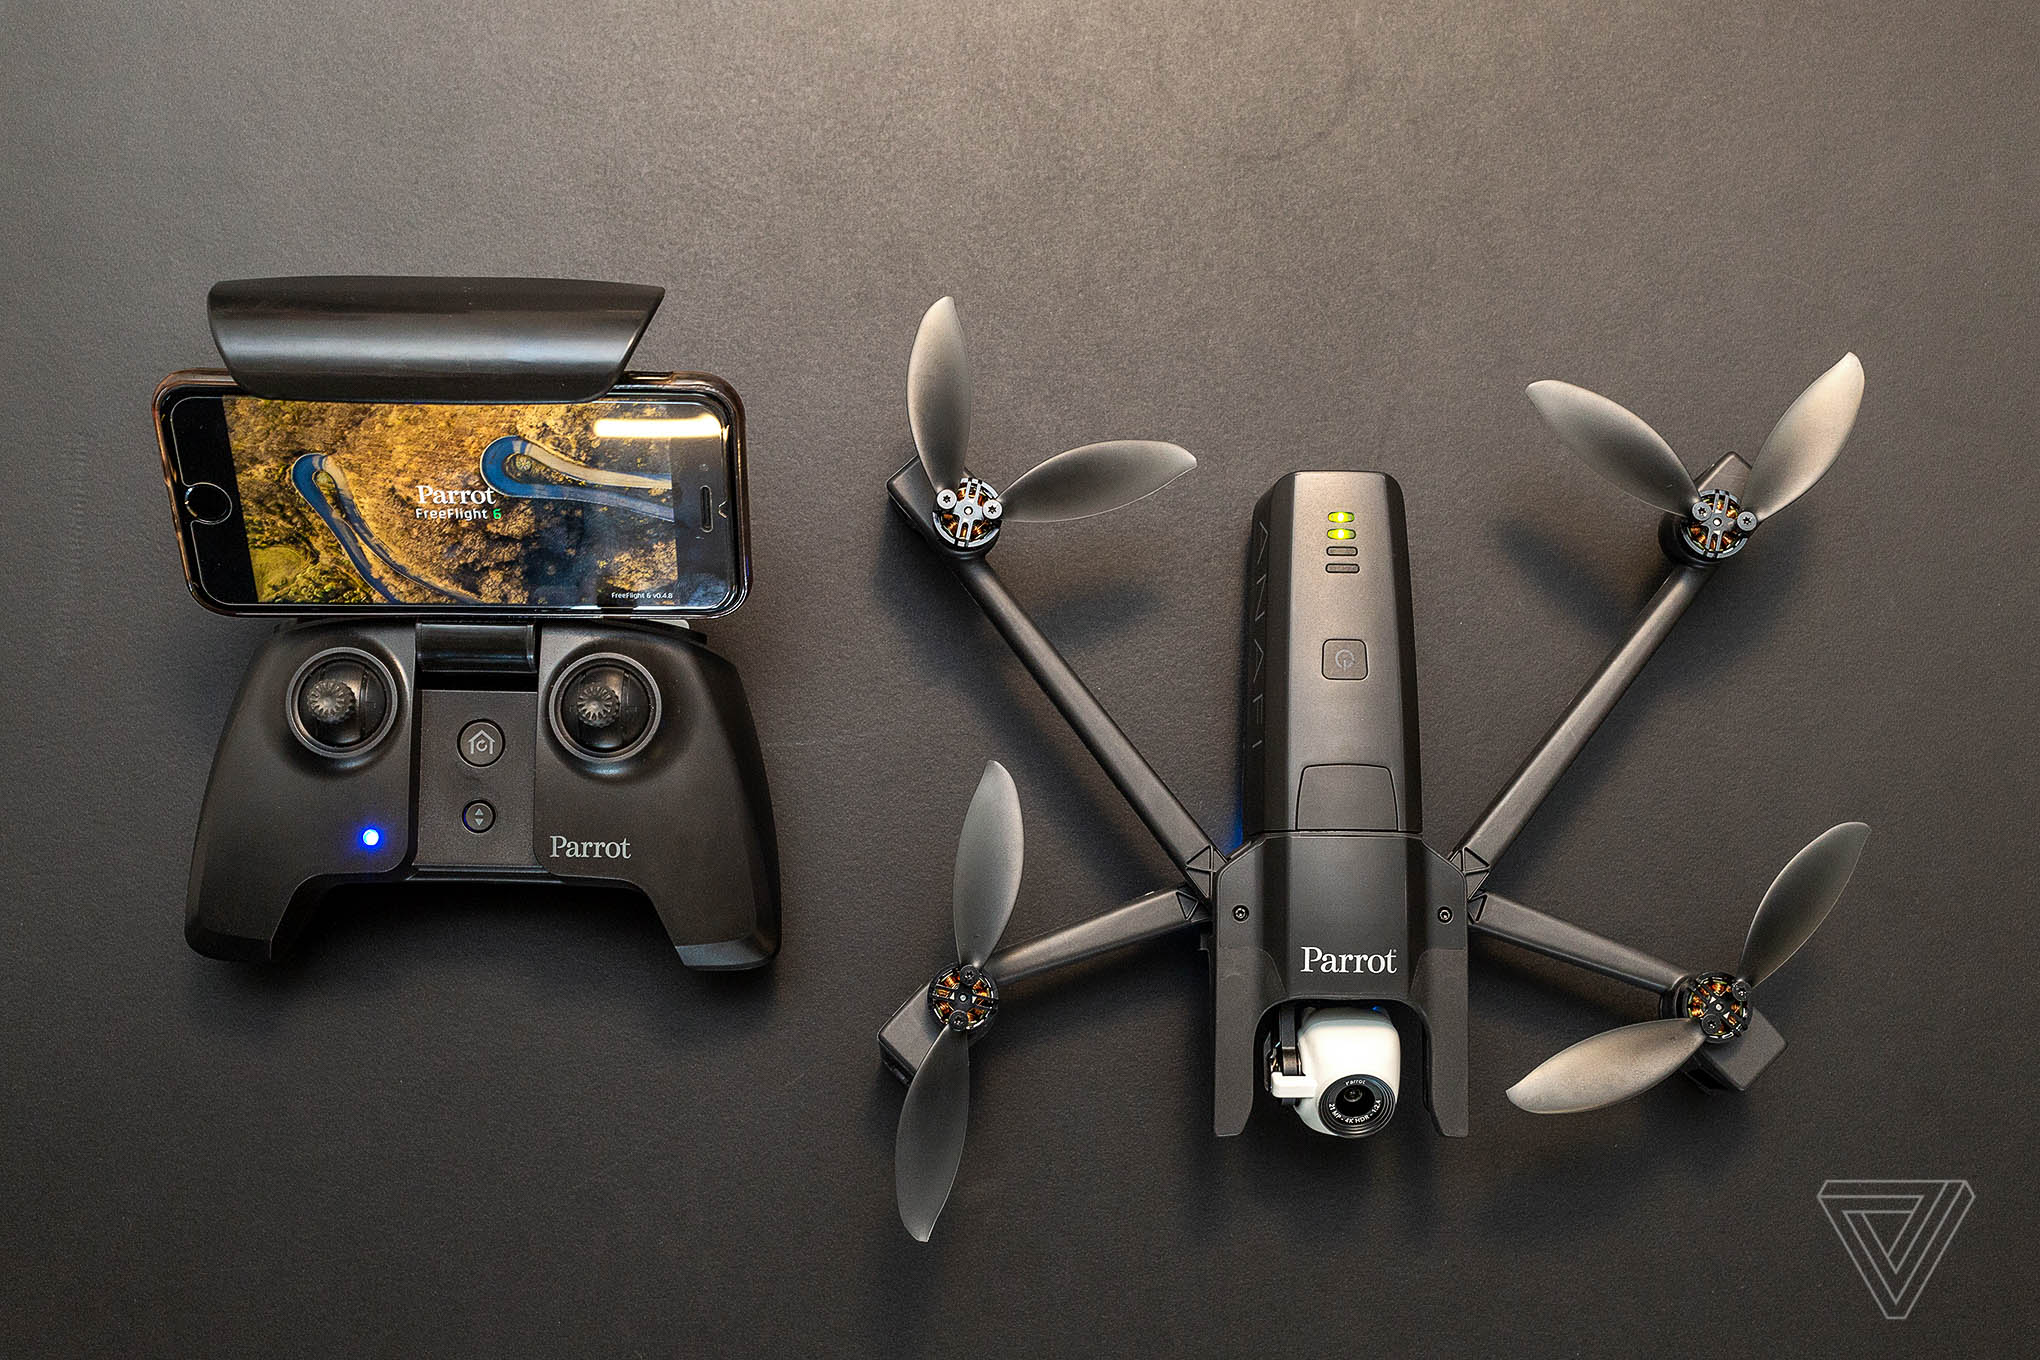 Parrot's new drone folds up for on-the-go use - The Verge